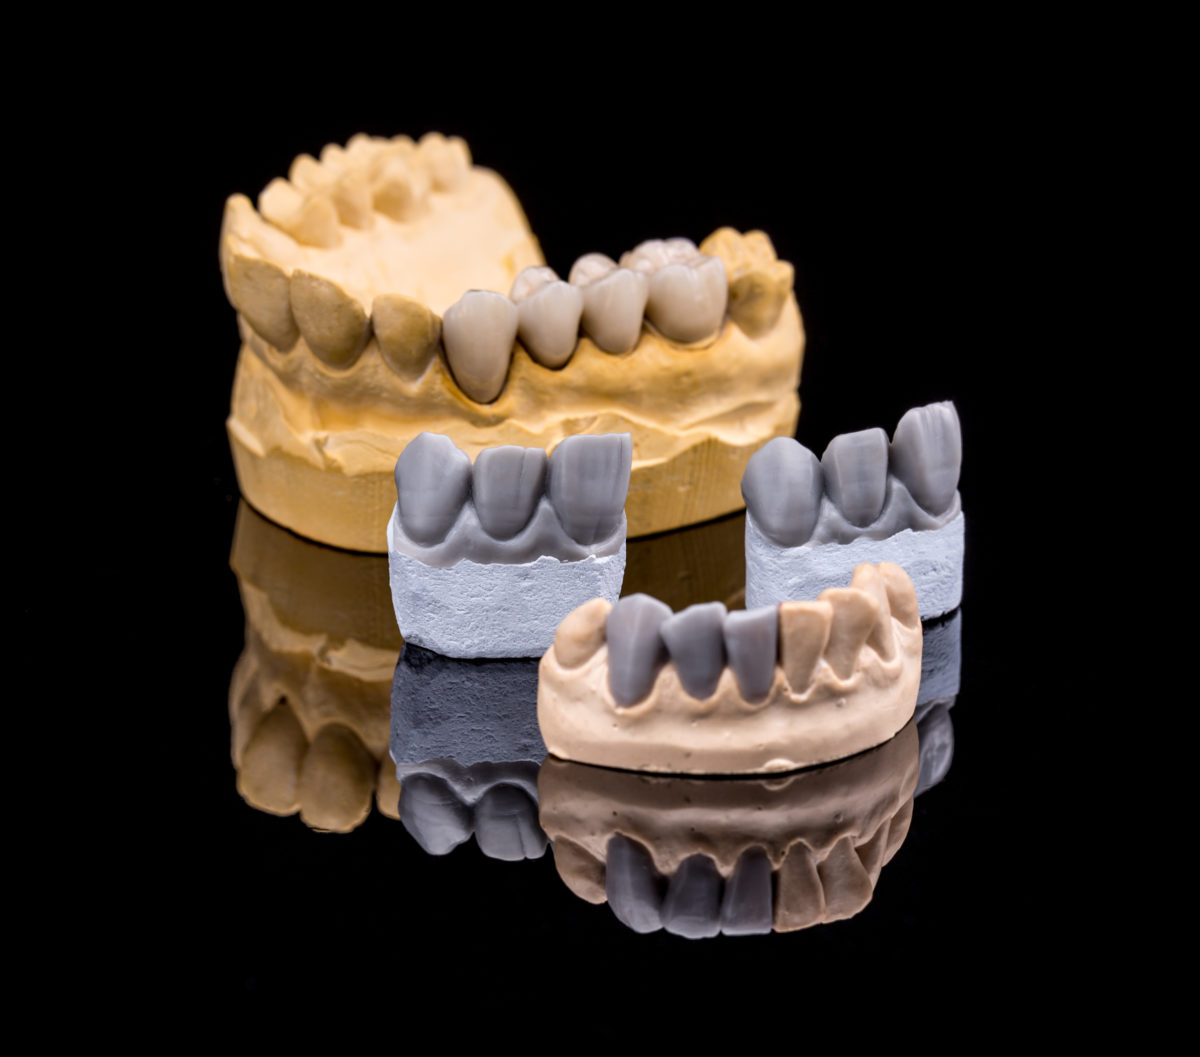 An example of different types of partial dentures